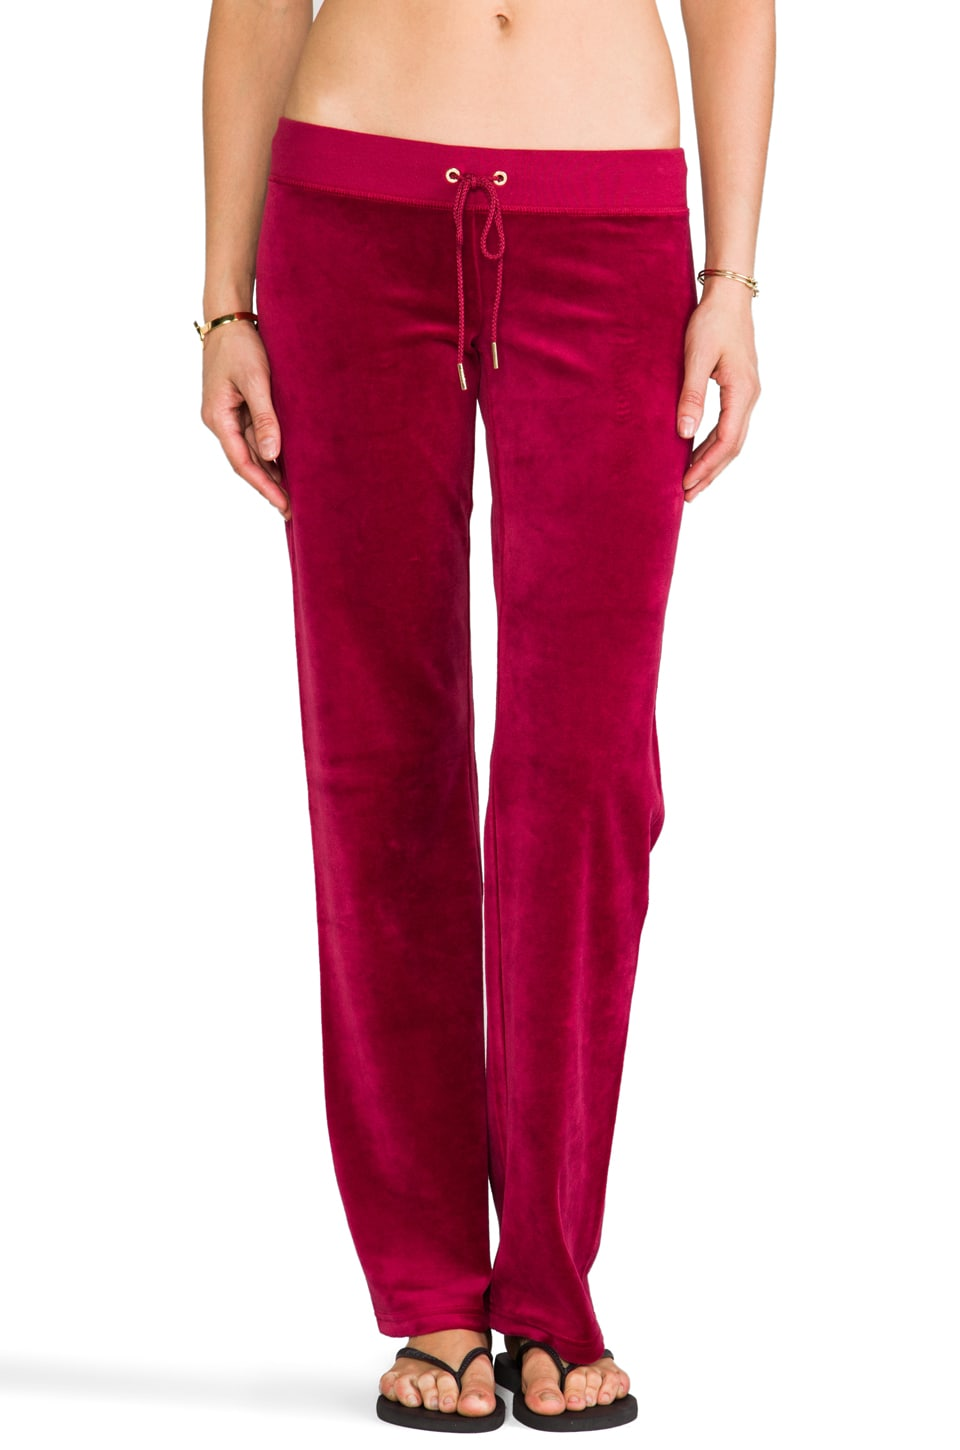 Juicy Couture J Bling Original Leg Pant in Well-Coiffed